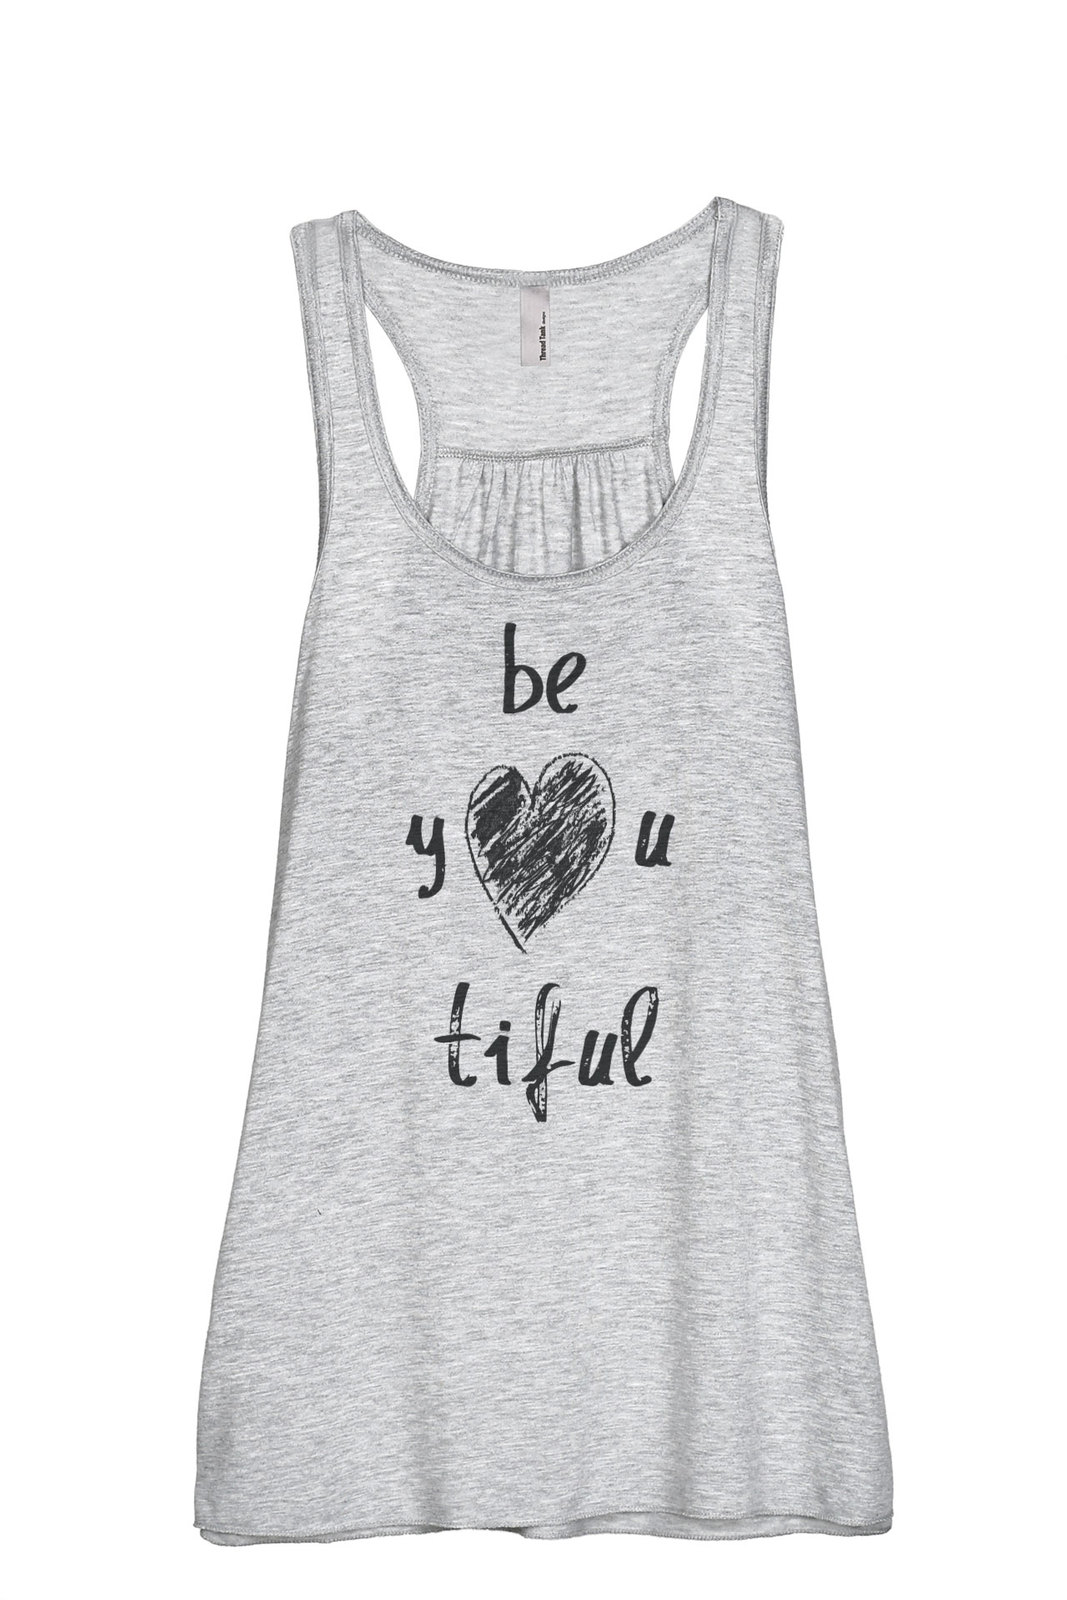 Thread Tank Be YOU Tiful Beautiful Women's Sleeveless Flowy Racerback Tank Top S